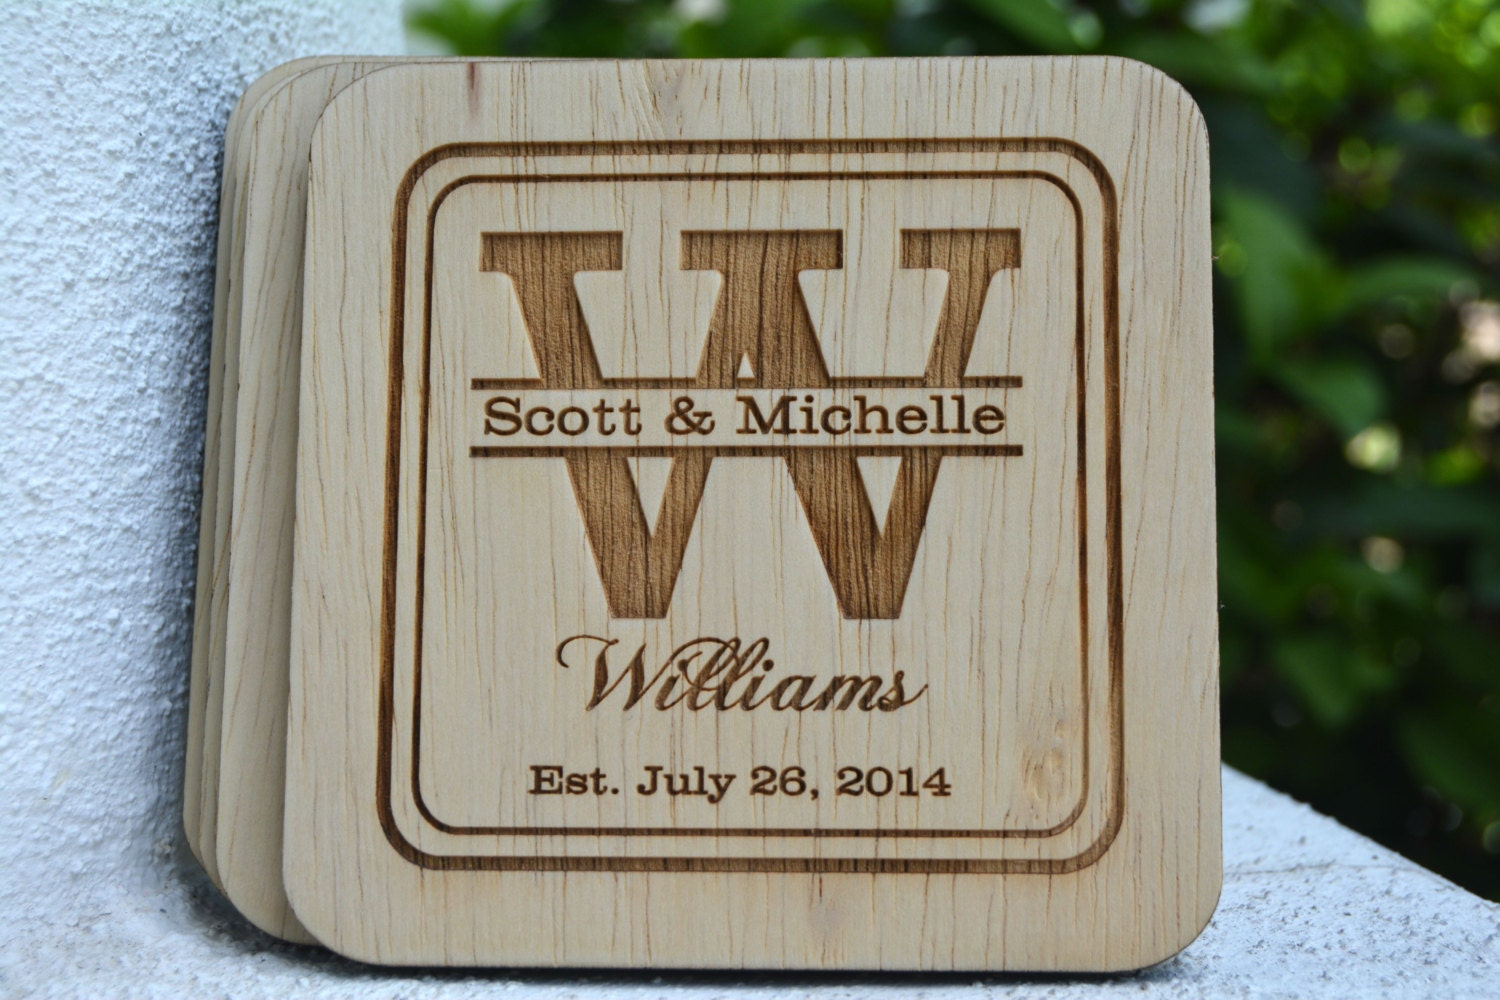 Wedding Gift Personalised: Personalized Coasters Wedding Favors Rustic Wedding